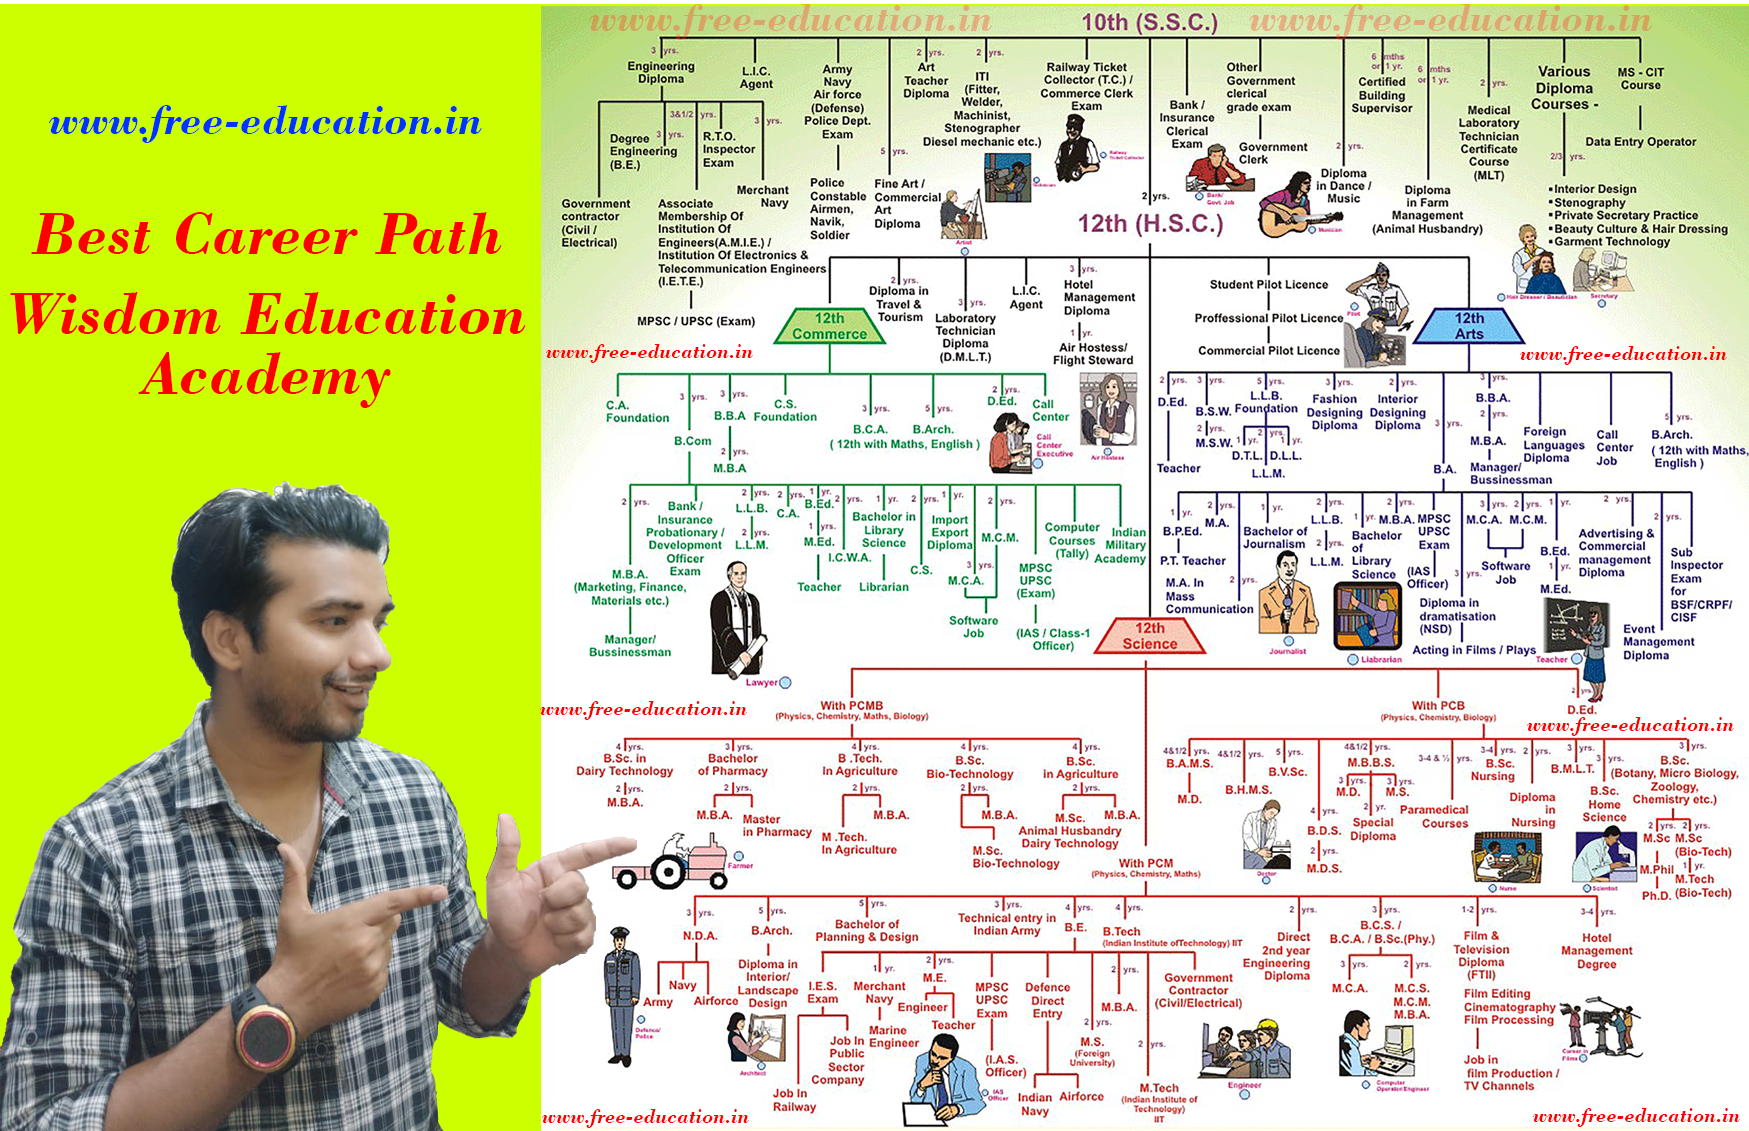 Best Career Path after 10th